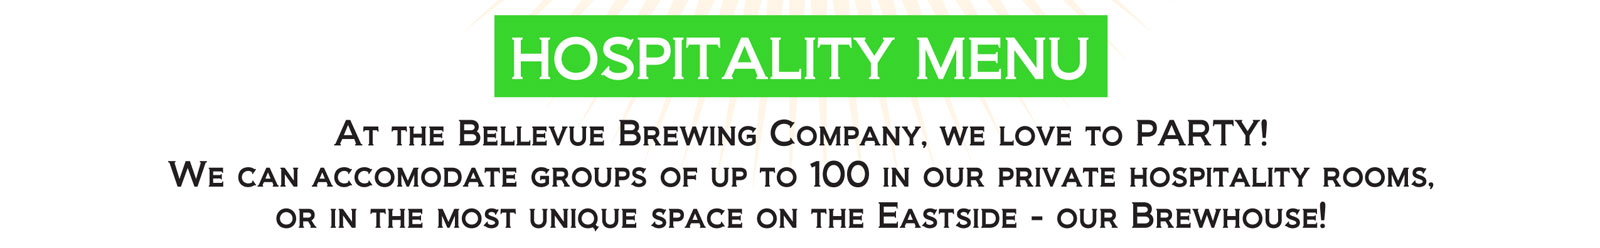 bellevue brewing company hospitality suites food order page  image